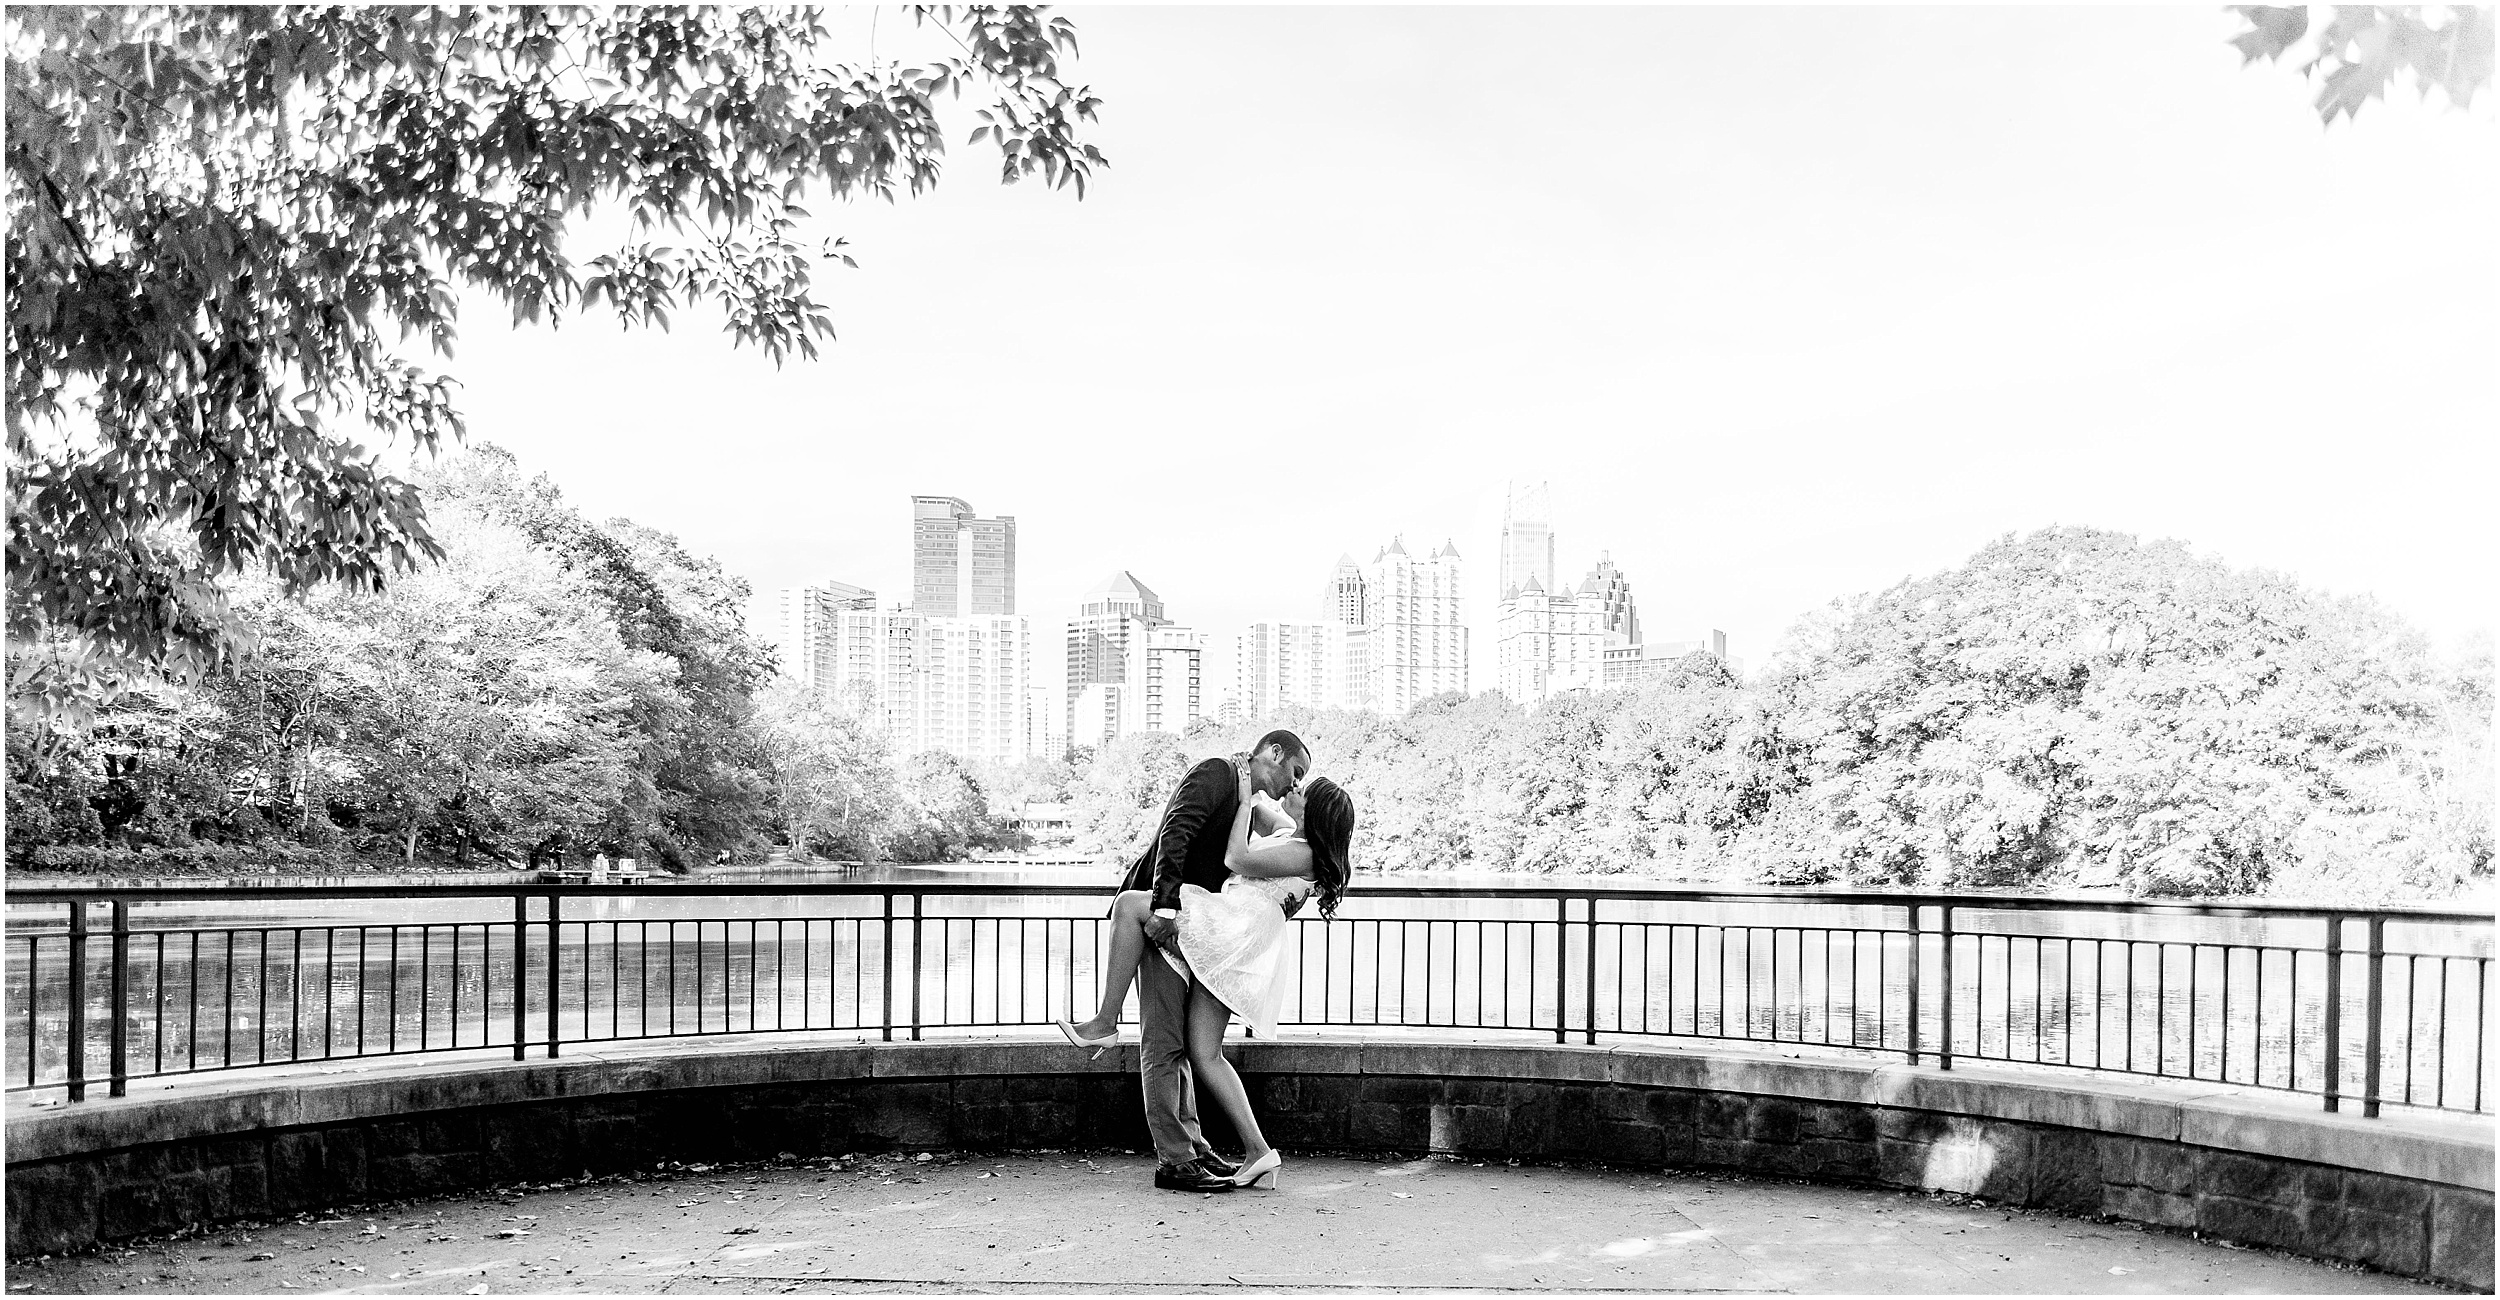 Tallahassee Florida Wedding, Matt and Lindsey Engagement Session at Piedmont Park, Atlanta Georgia_0008.jpg